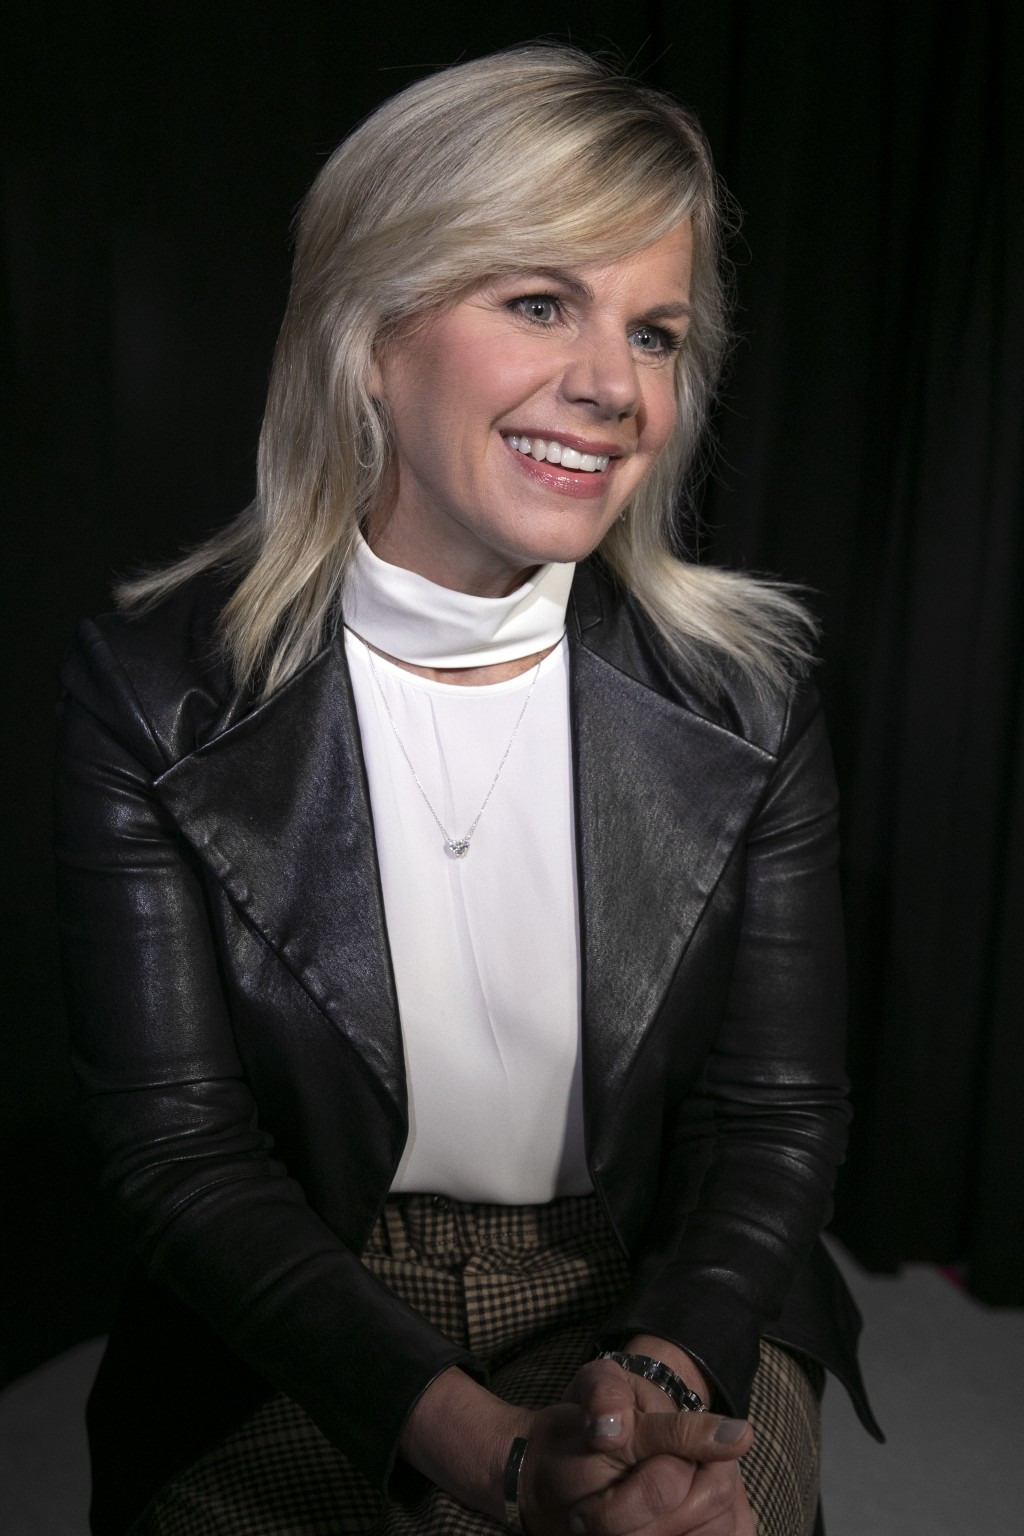 This Oct. 31, 2019 photo shows former Fox News personality Gretchen Carlson during an interview in New York. Carlson received a reported $20 million s...